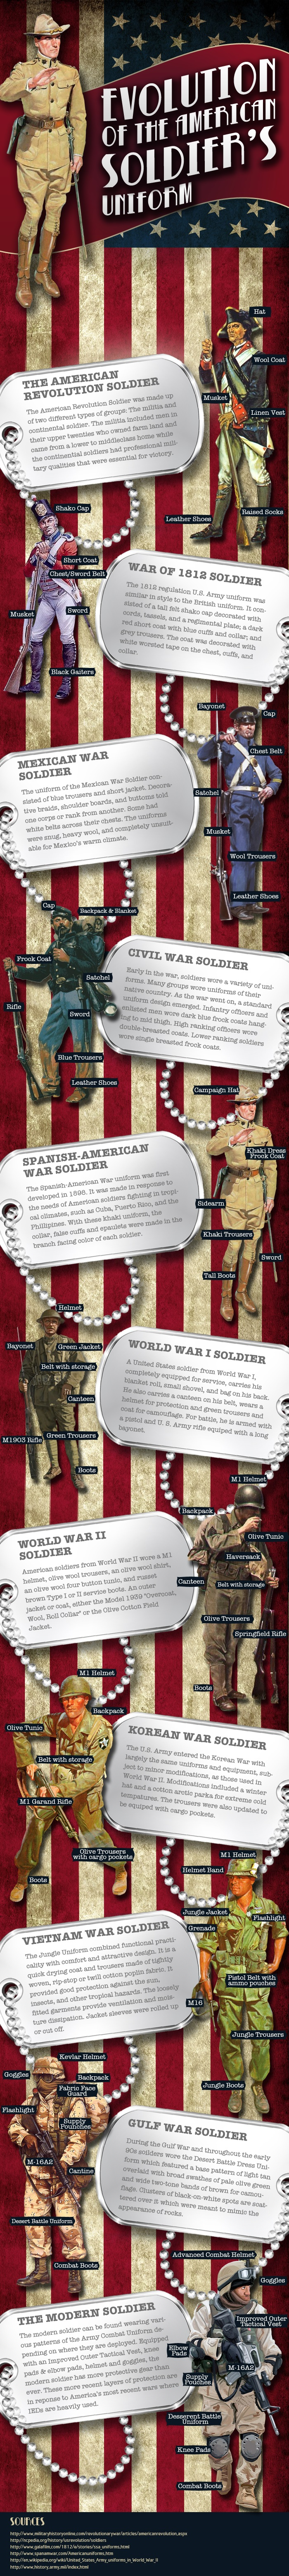 The Evolution of the American Soldier's Uniform